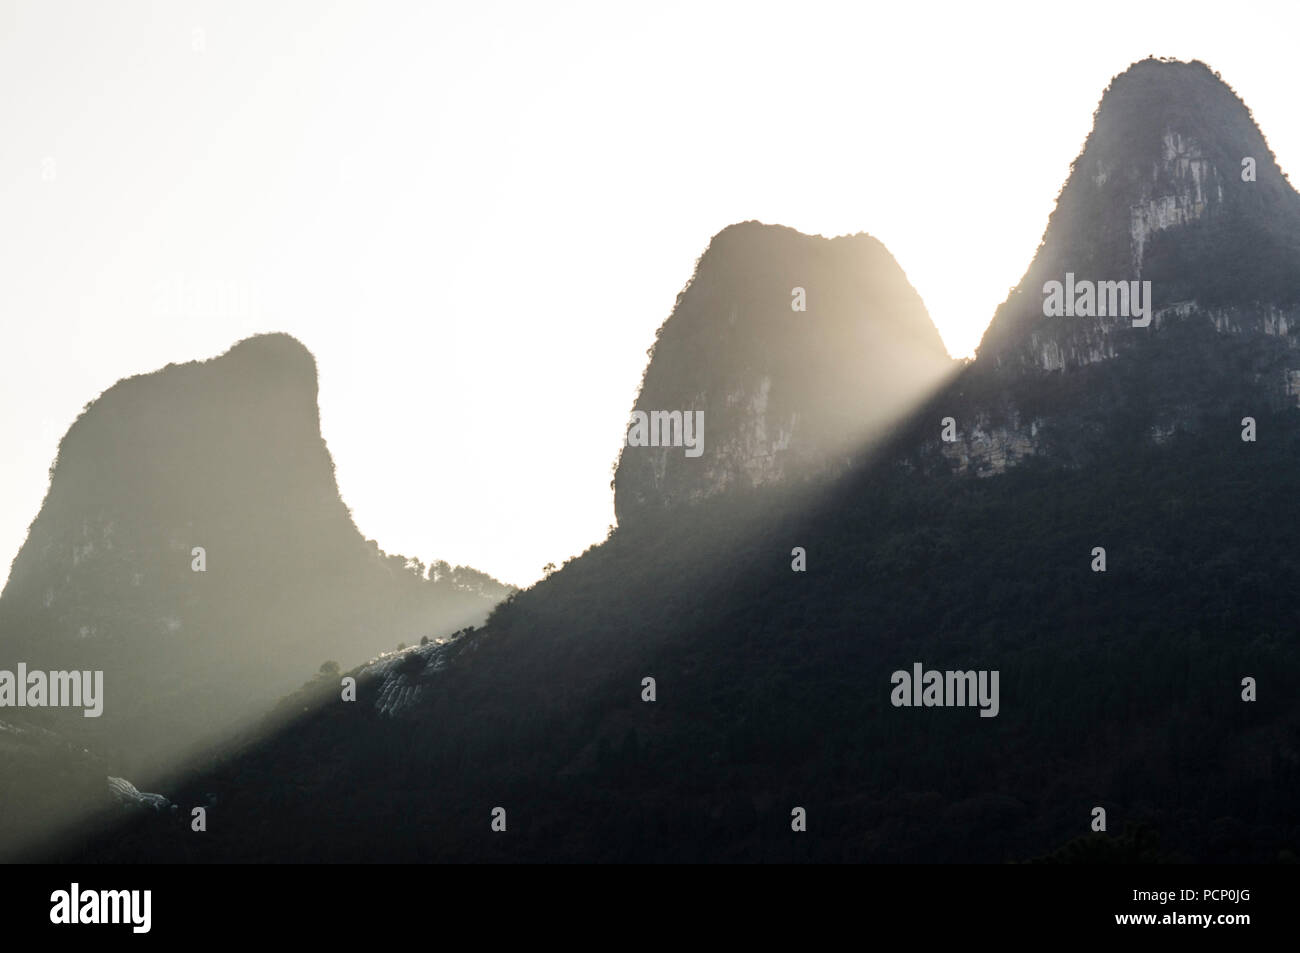 The fascinating hills of Guillin in the evening sun - Stock Image